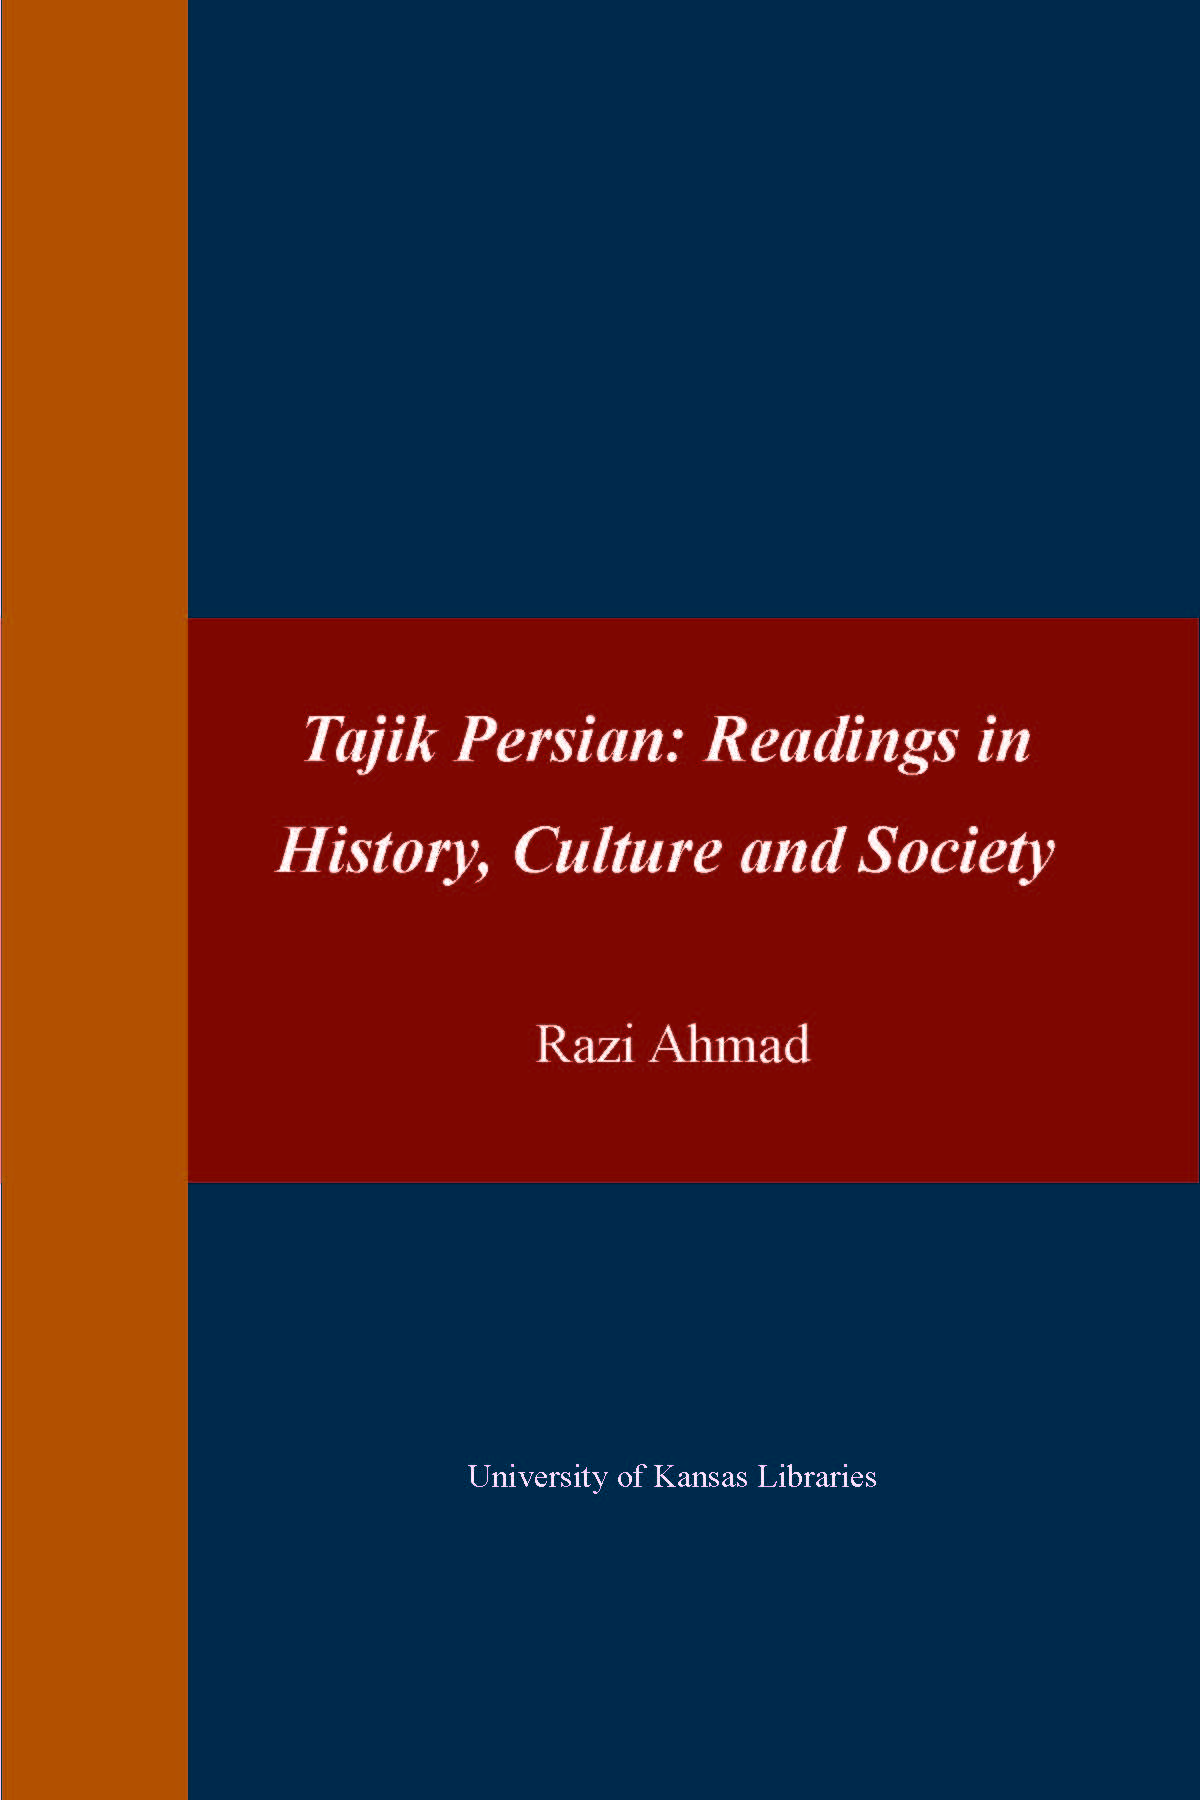 Tajik Persian book cover